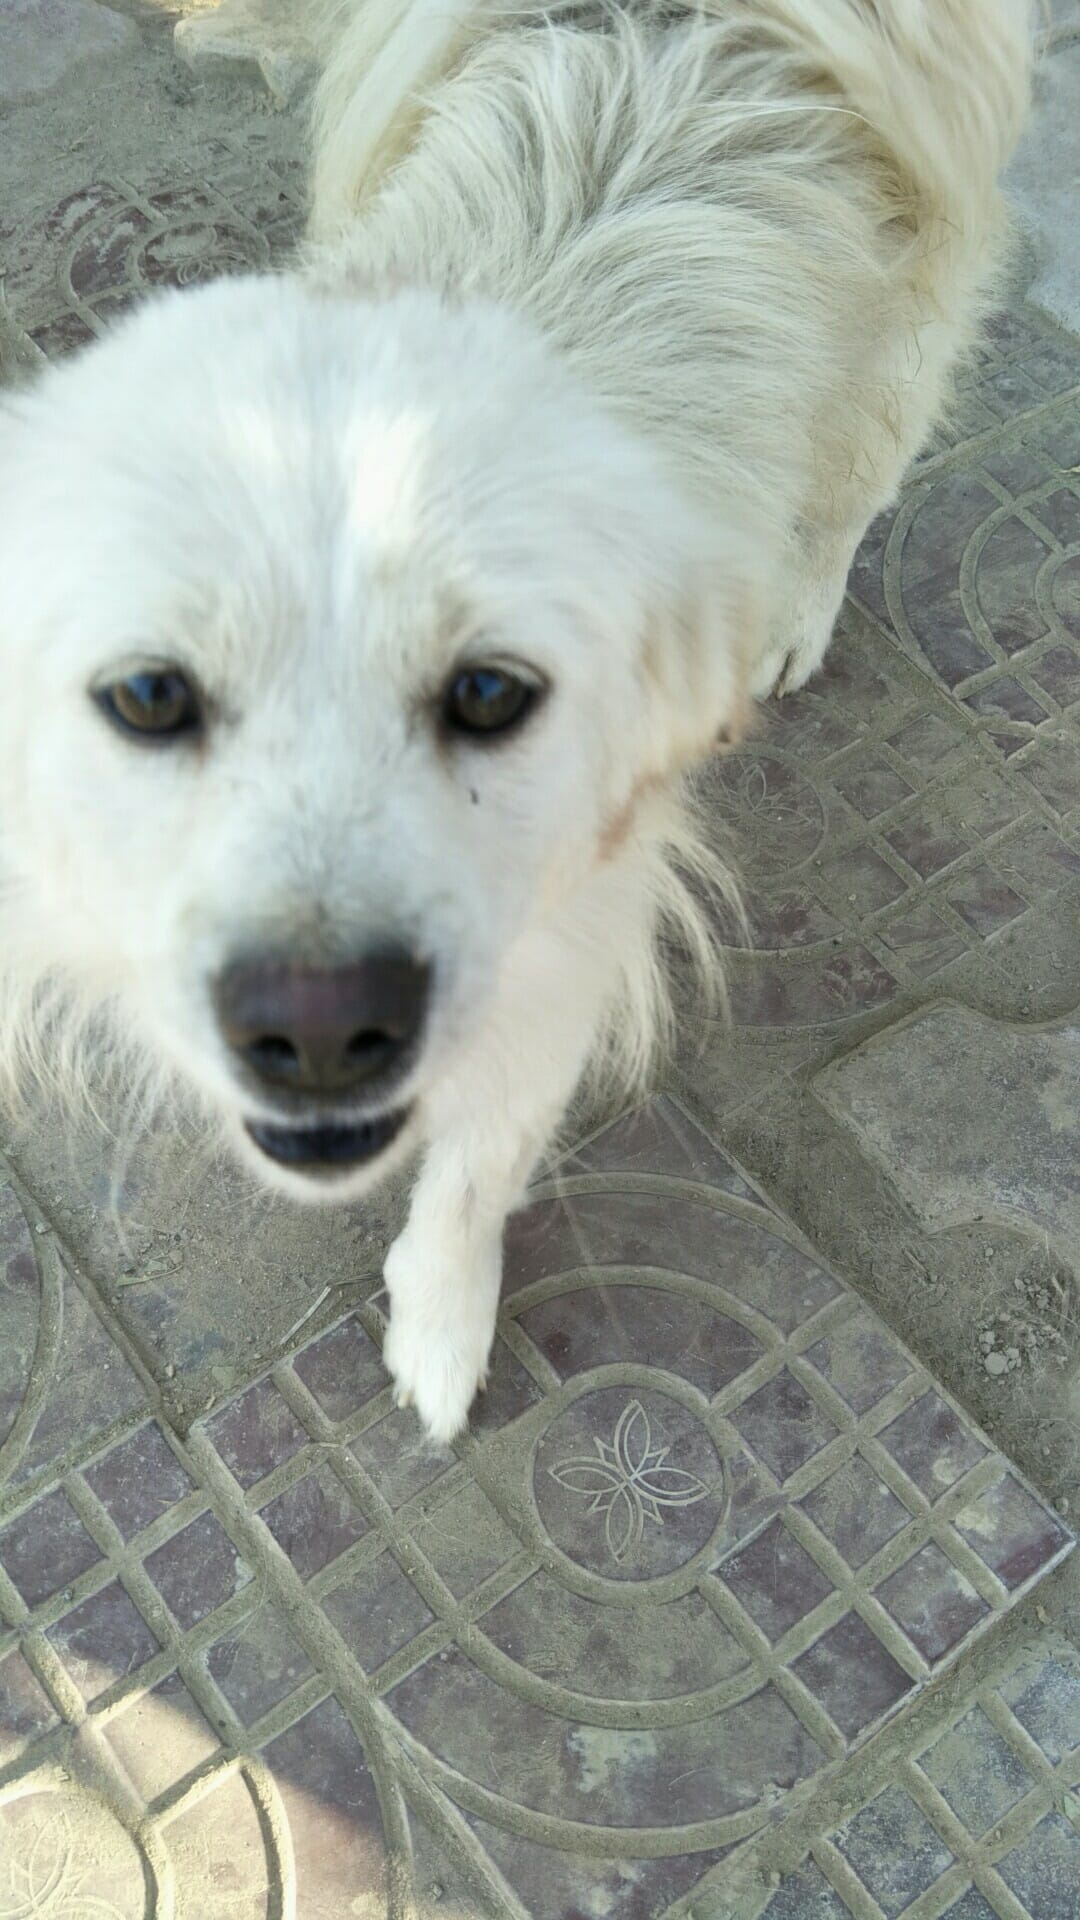 Yellow Hair, one of the many dogs that animal heroes like you have helped us at Lady Freethinker to rescue. Thank you!